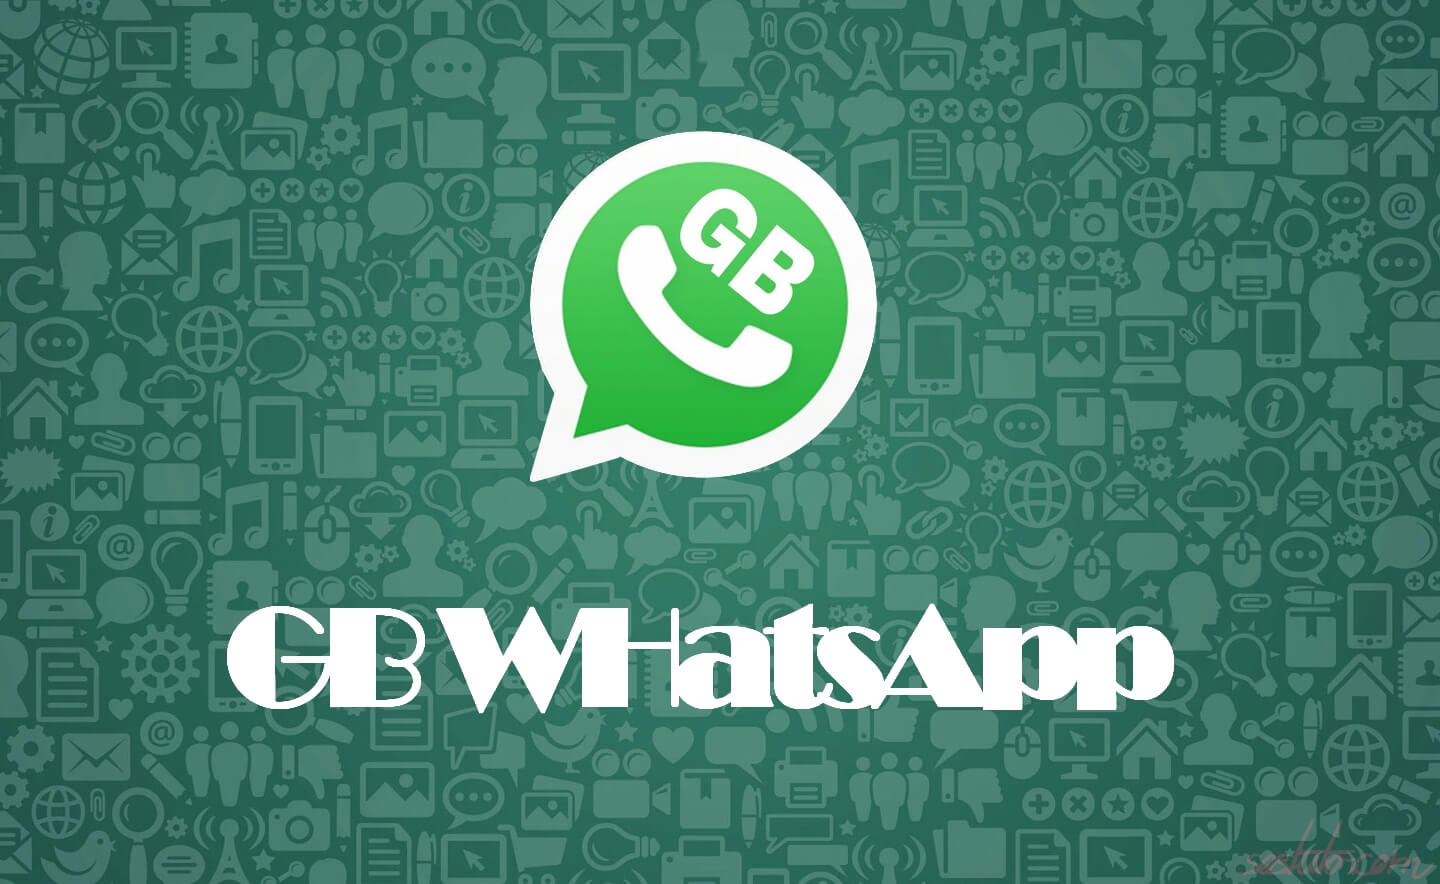 GBWhatsApp Télécharger WhatsApp GB 2019 version 7.00 [Anti-Ban WhatsApp] + WhatsApp Plus